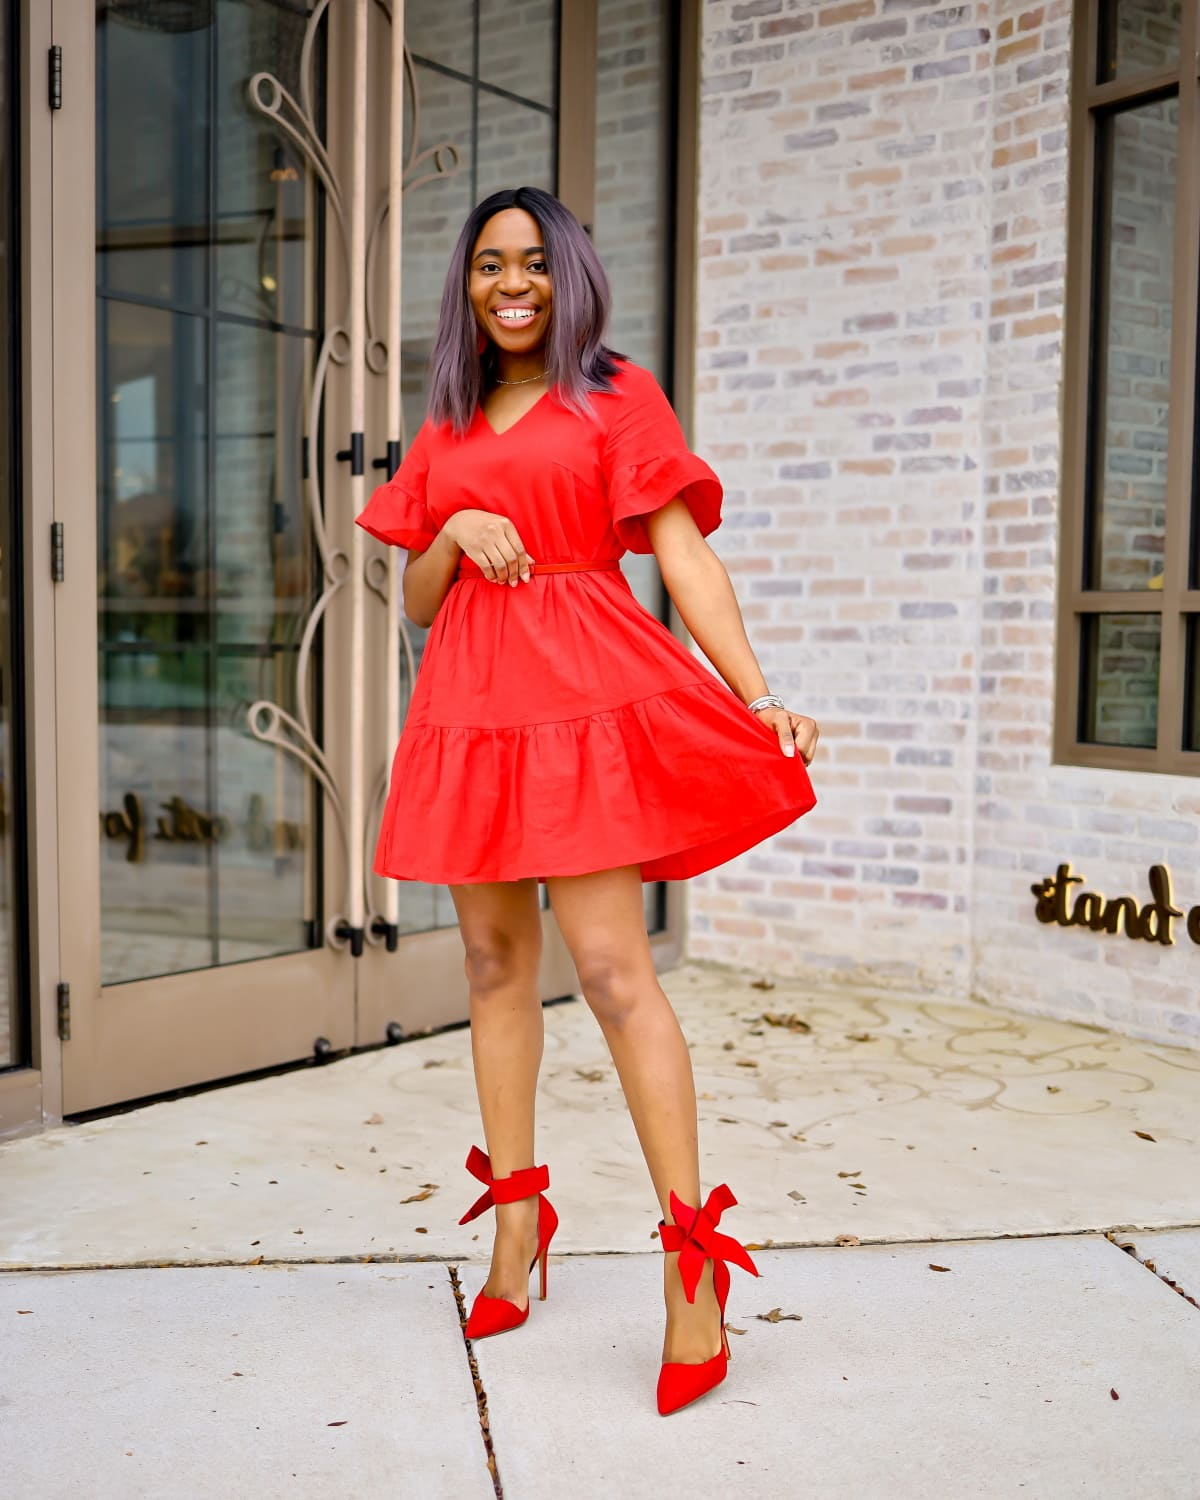 7 Easy Ways to Wear a Red Dress | Worried that red might be too bold for you? Here are outfit options wearing a red shift dress you can steal to help you effortlessly slay a red dress this season. Everything from a casual look with on-trend sneakers and work denim for the career woman to keeping warm with a blanket scarf and being the life of the party in an all-red monochrome outfit. I've got you covered!